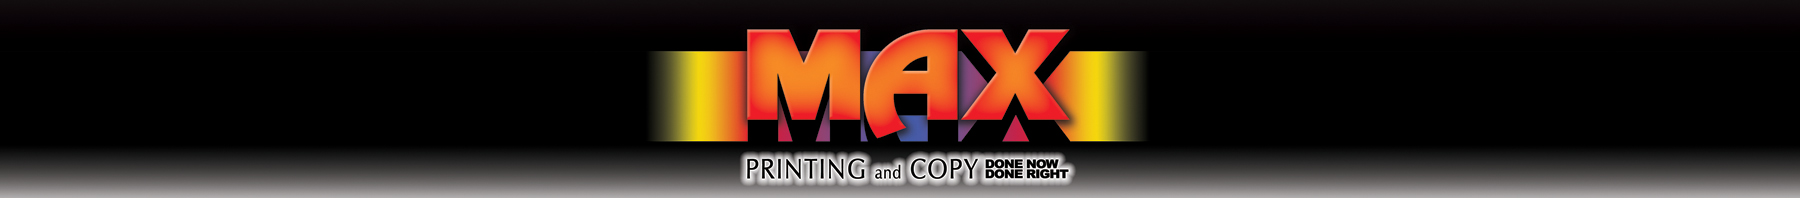 Max Printing & Copy Center